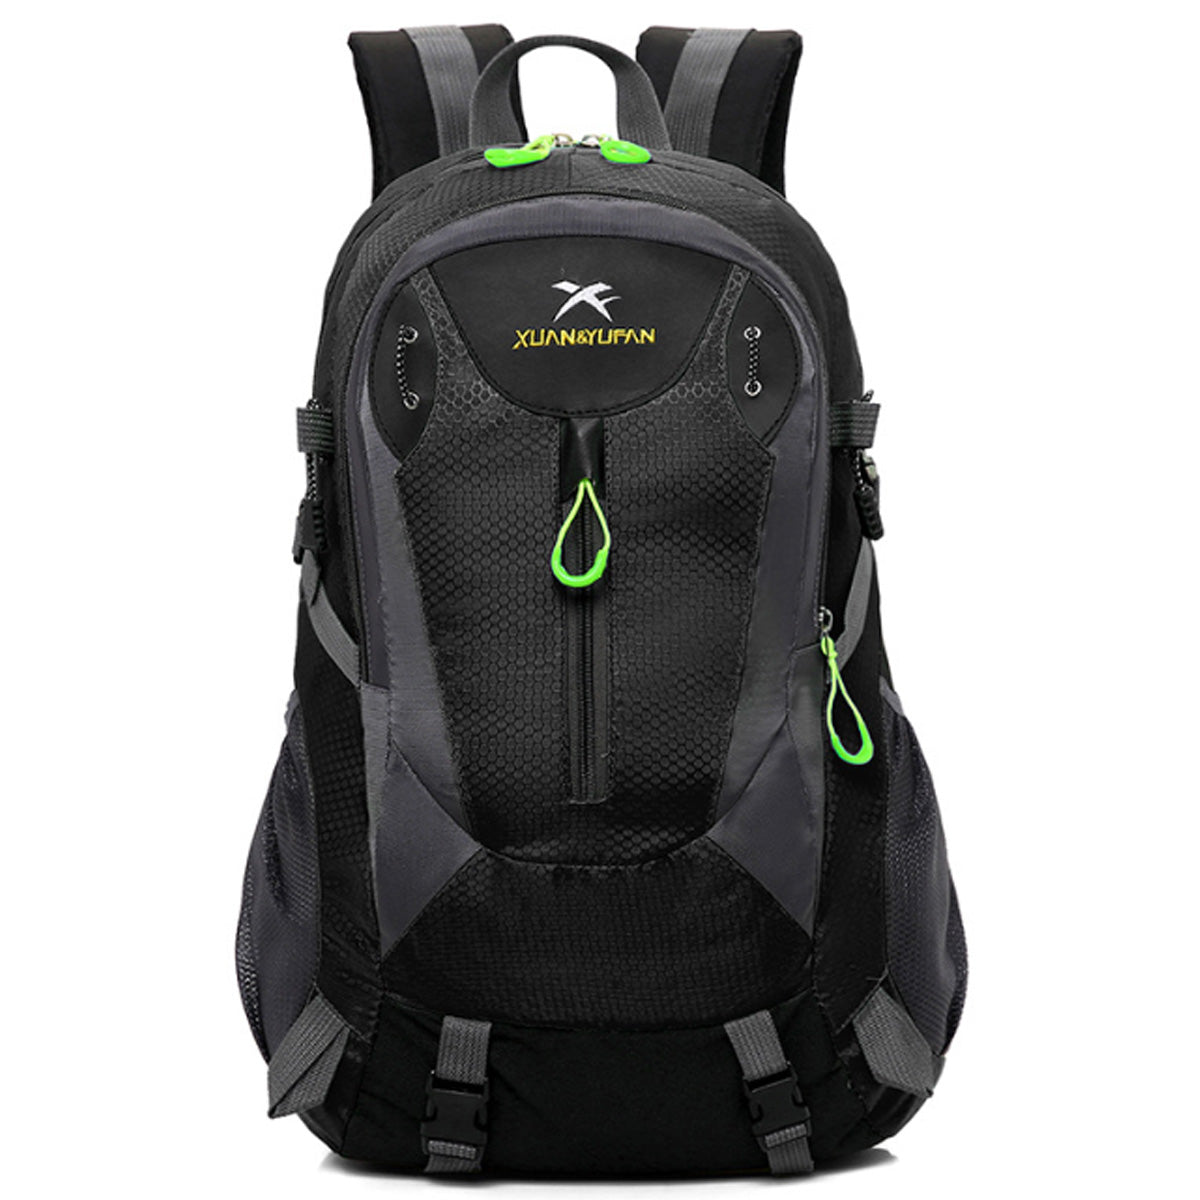 cozyrex,Nylon Waterproof Backpack Outdoor Traveling Hiking Camping Bag Sports Bag,CozyRex,